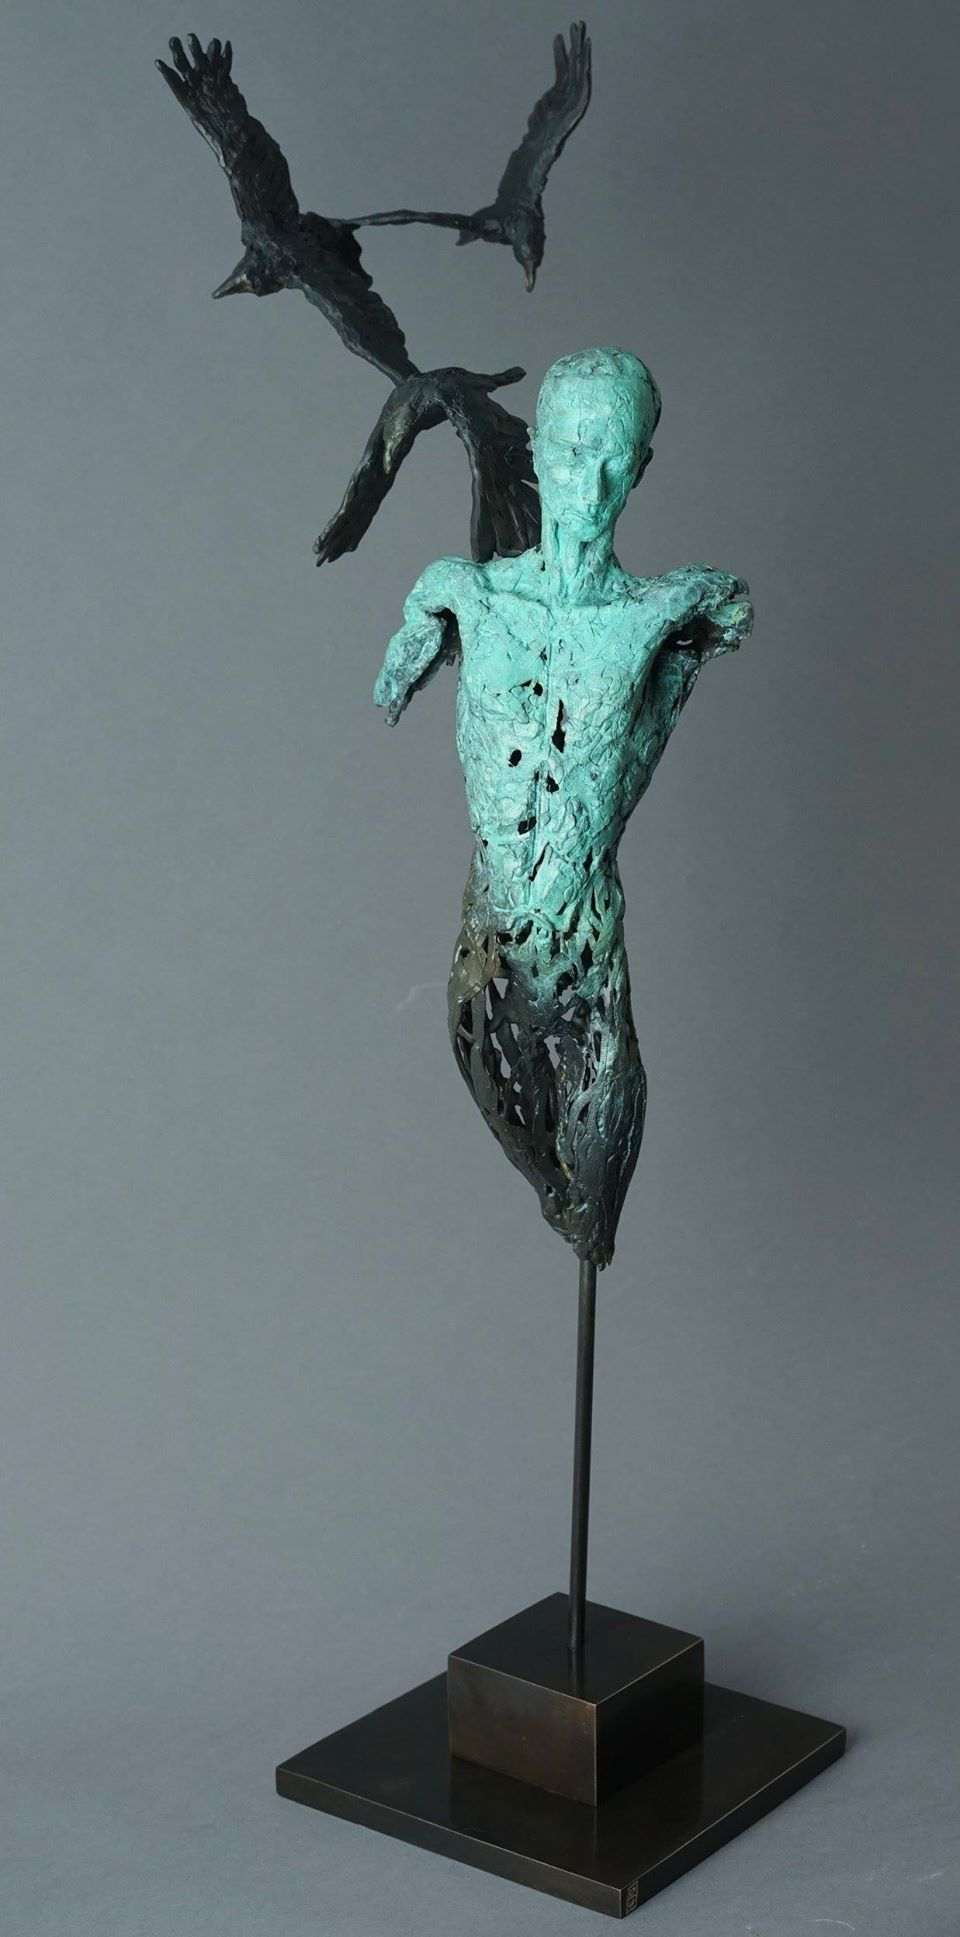 The Raven King - Edition 1 of 1 Bronze Patinated Sculpture